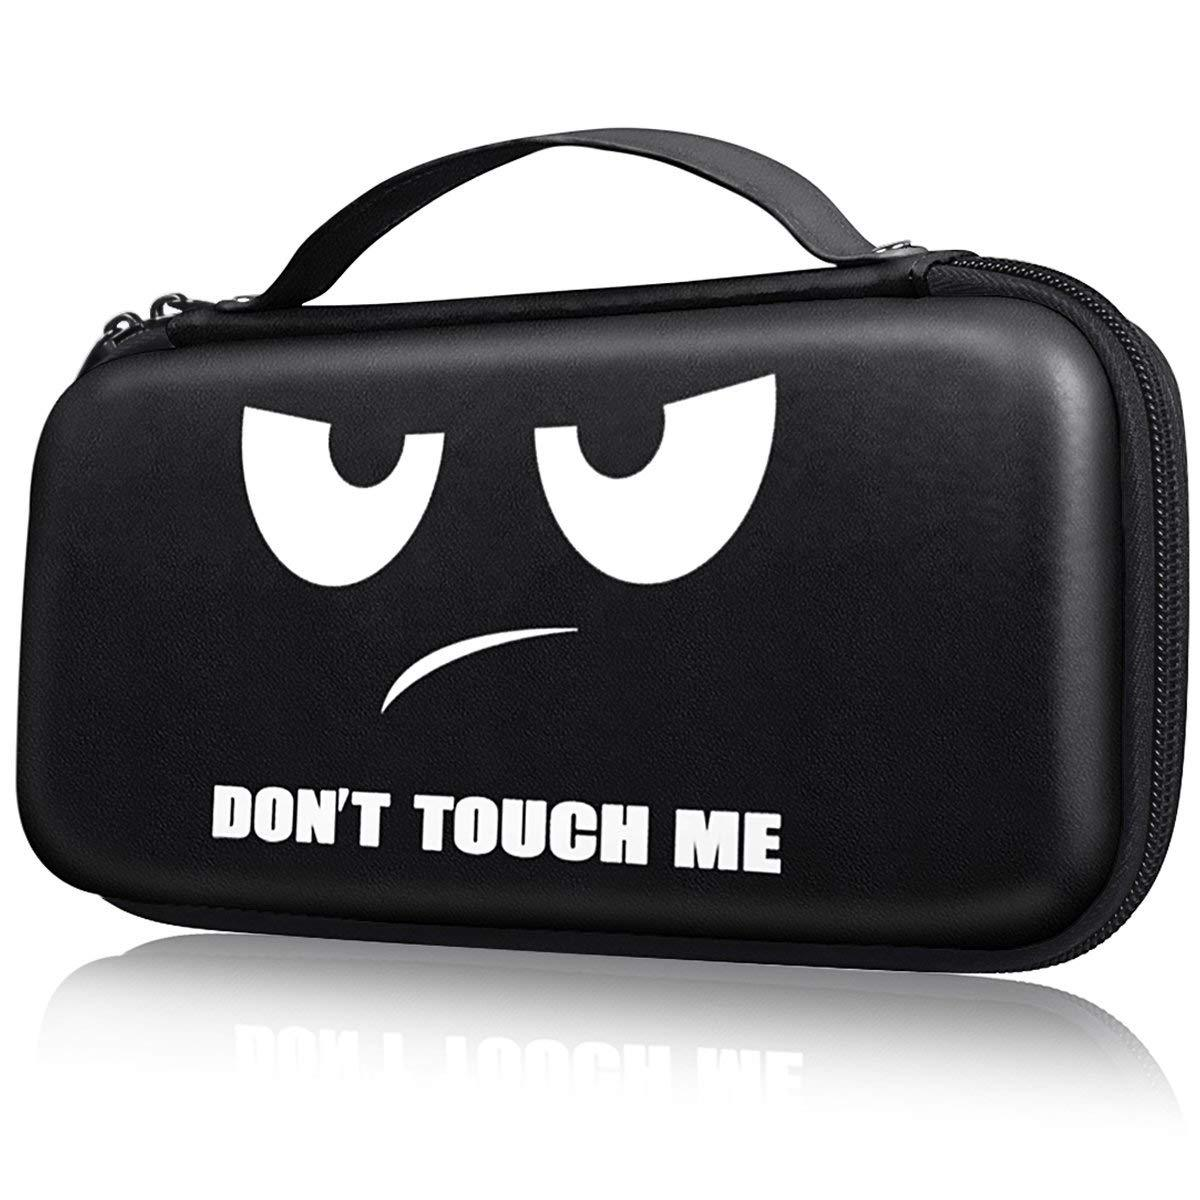 Carry Case Protective Hard Portable Travel Carry Shell Pouch for Nintend Switch Console & Accessories as shown